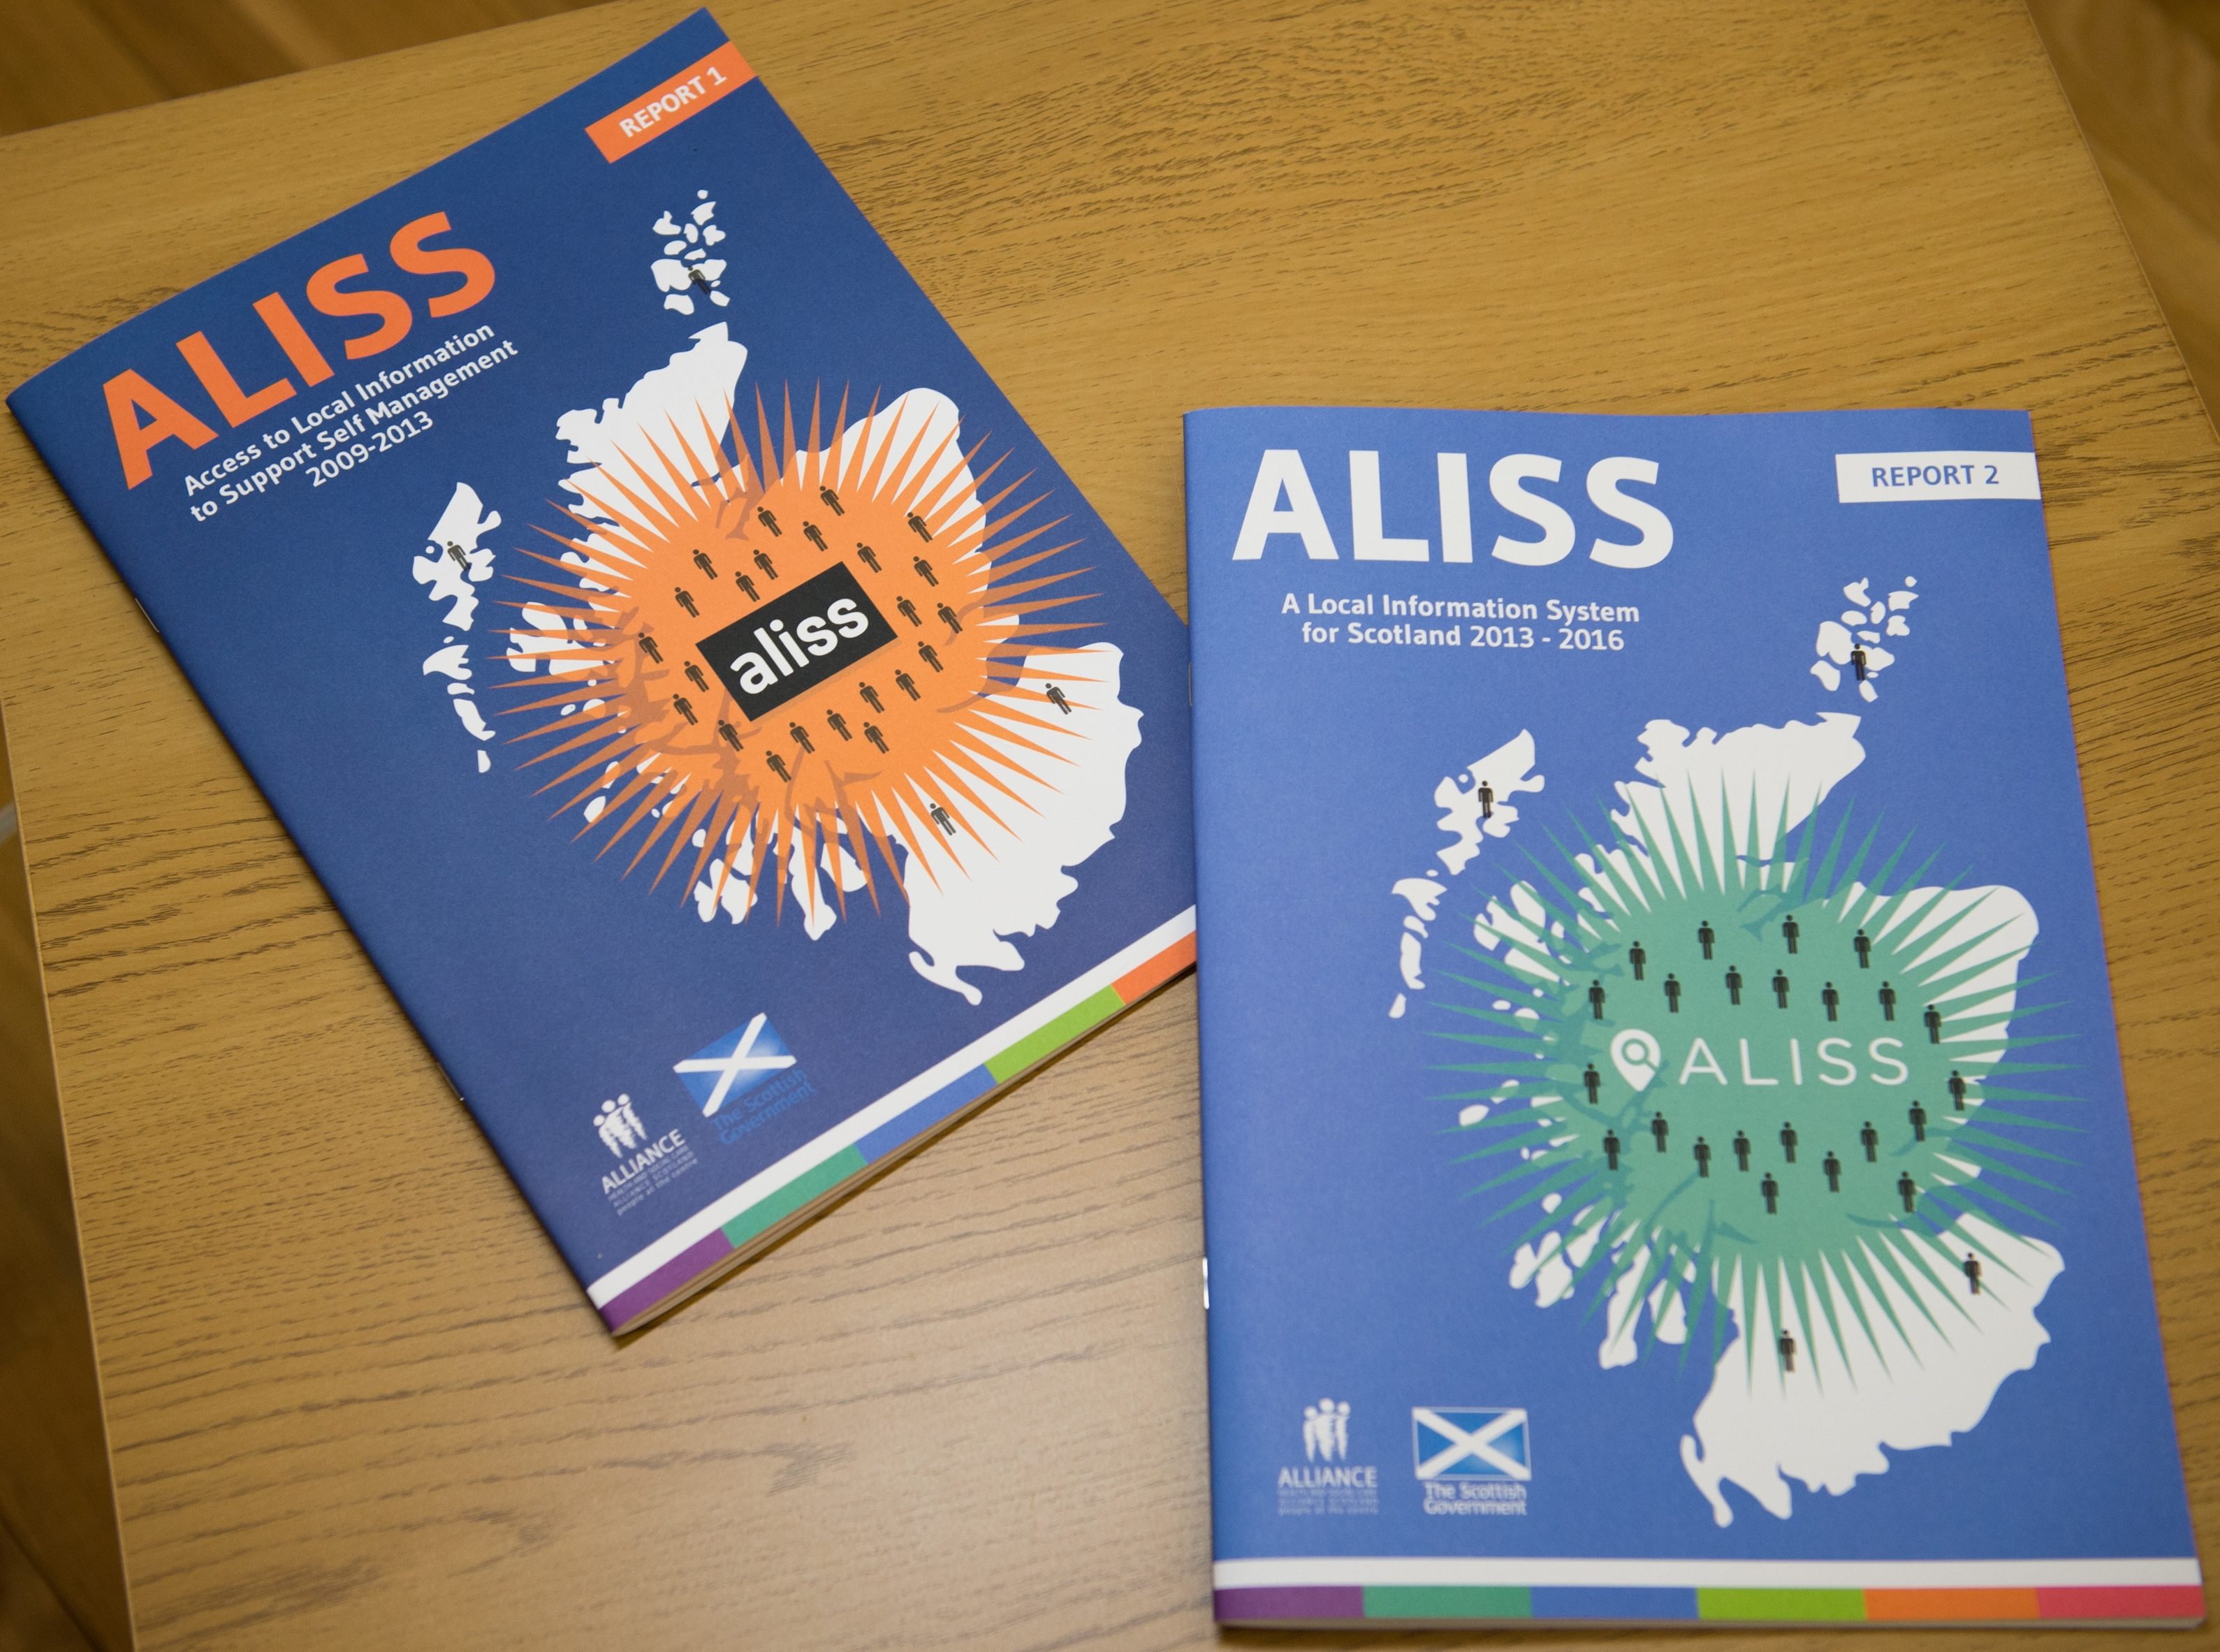 Picture of two reports, telling the history of ALISS - ALISS report 1 and ALISS Report 2